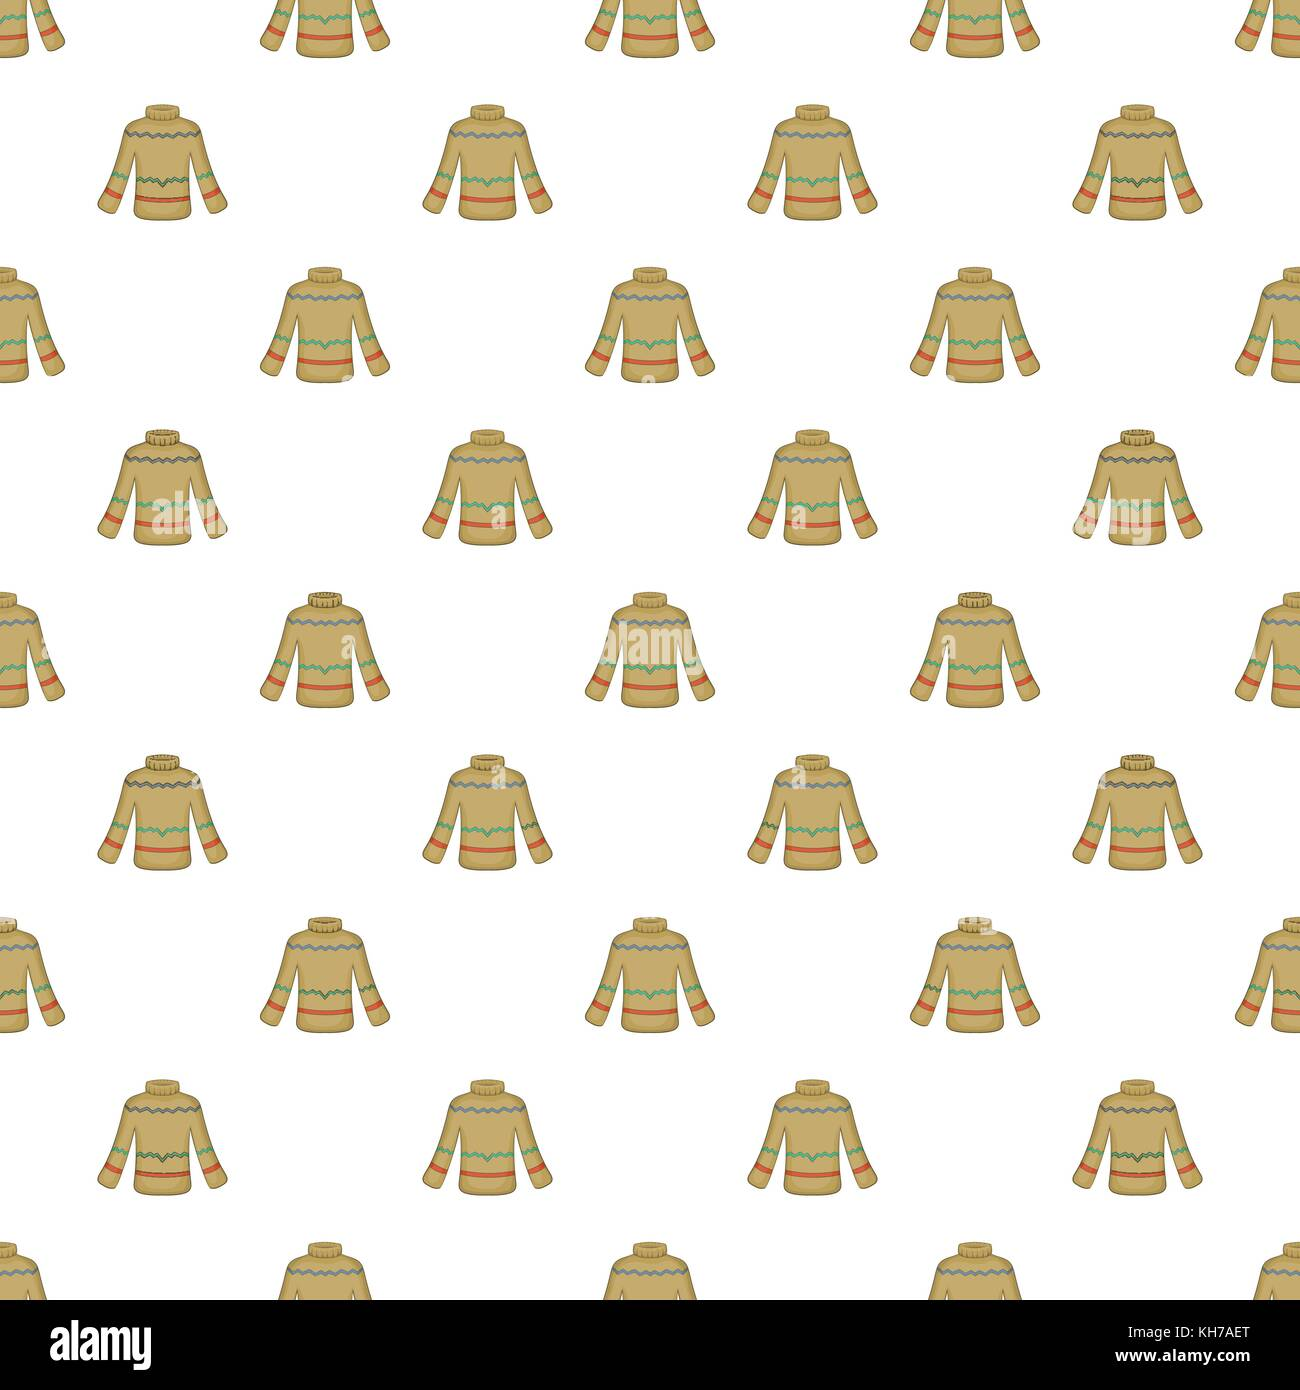 Sweater pattern, cartoon style - Stock Vector